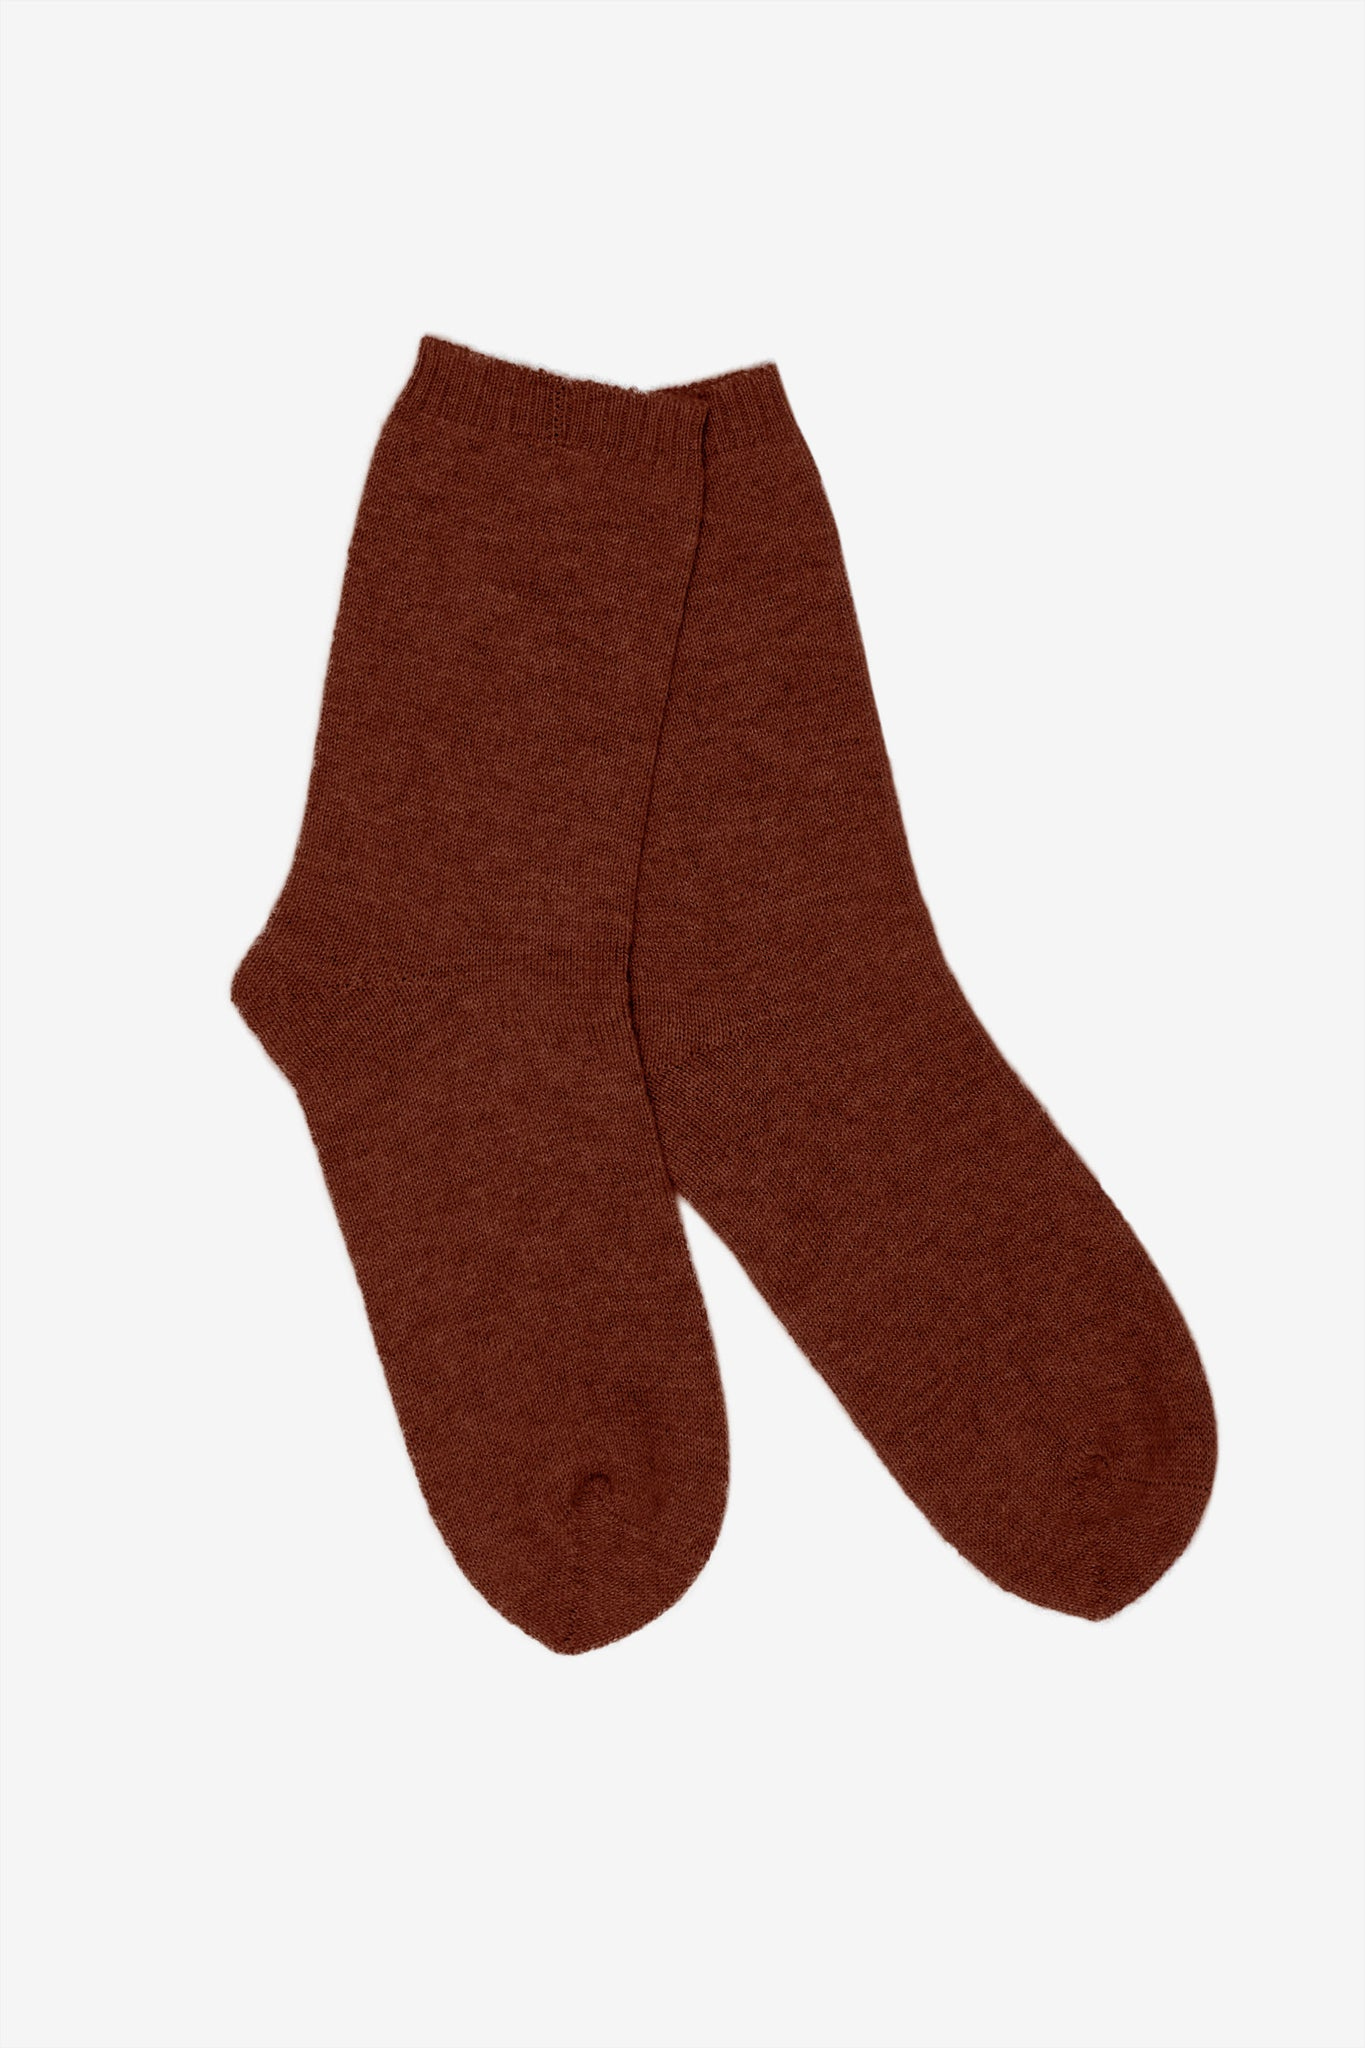 Ulla cashmere lounge socks in brown